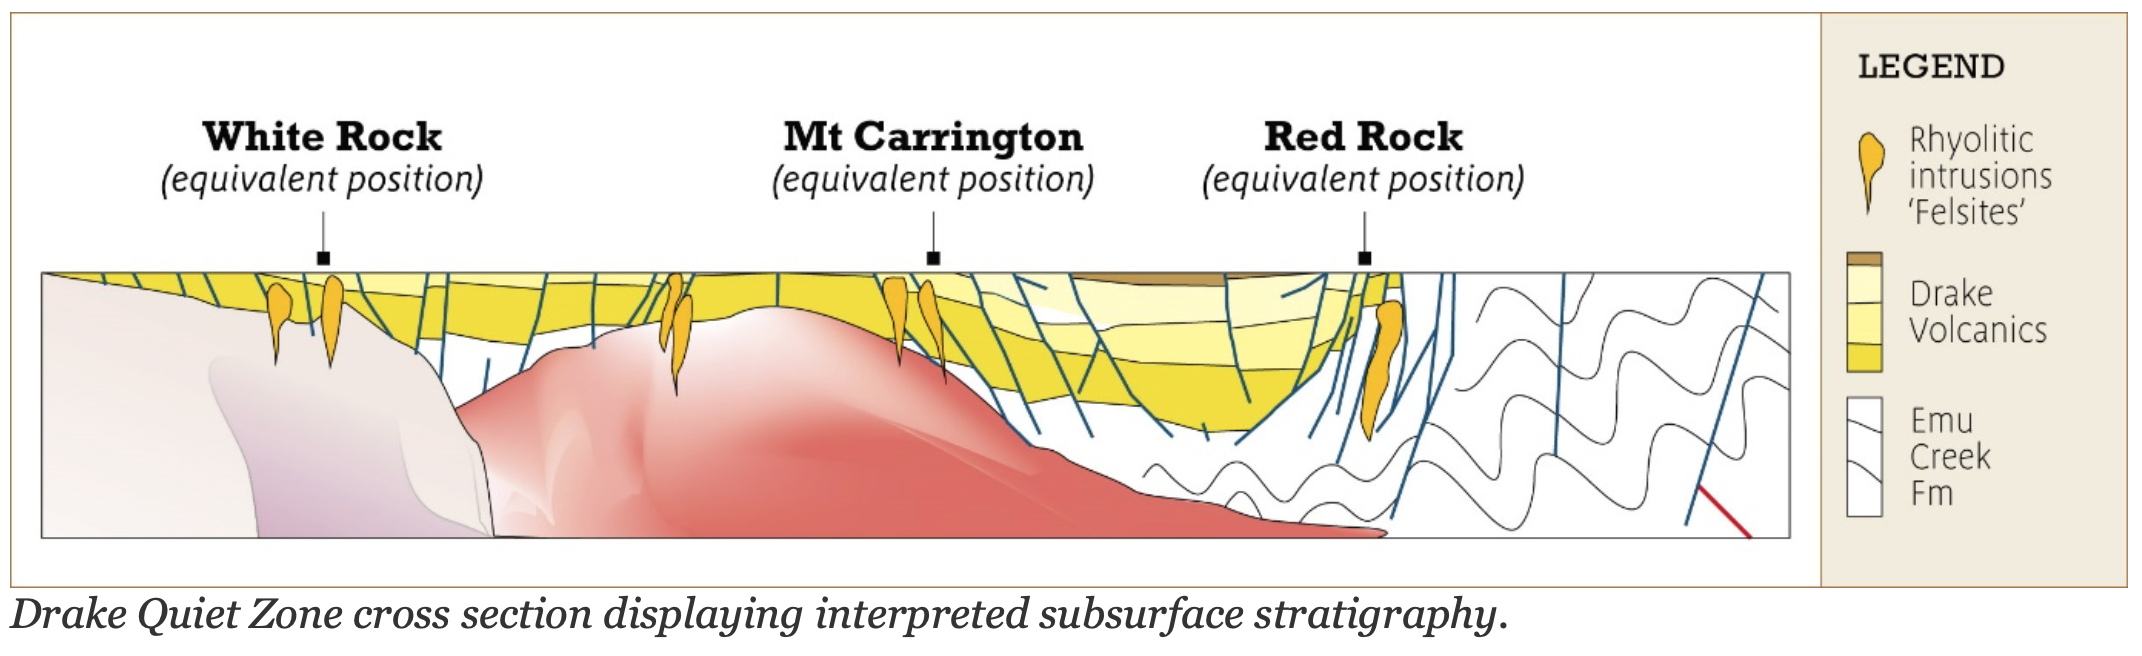 Drake Quiet Zone cross section displaying interpreted subsurface stratigraphy..png